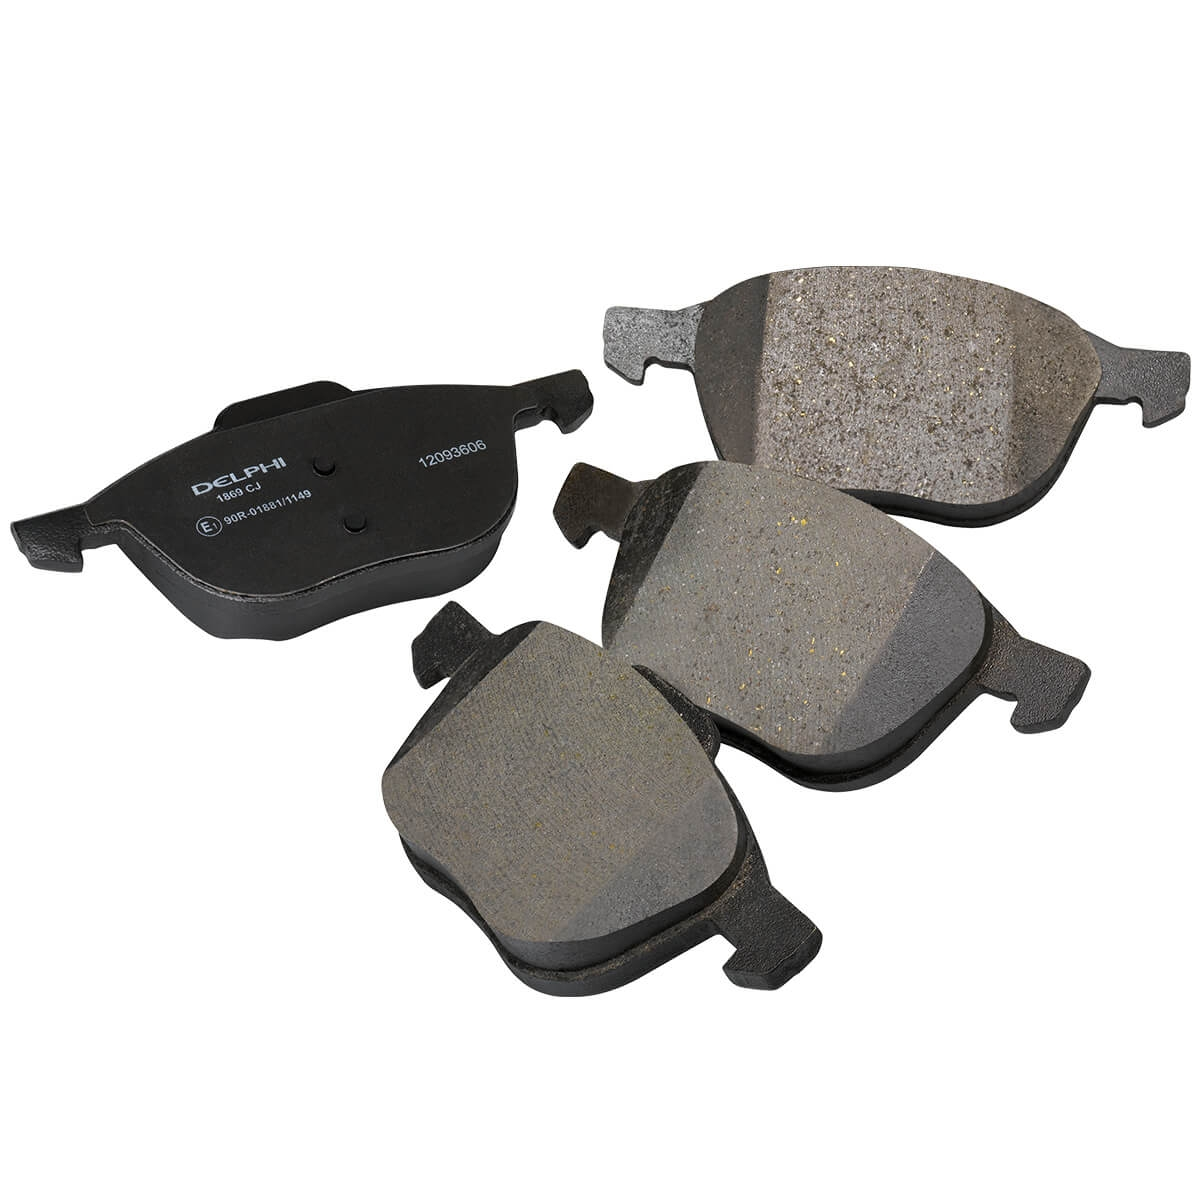 CHRYSLER VOYAGER IV Brake Pad Set